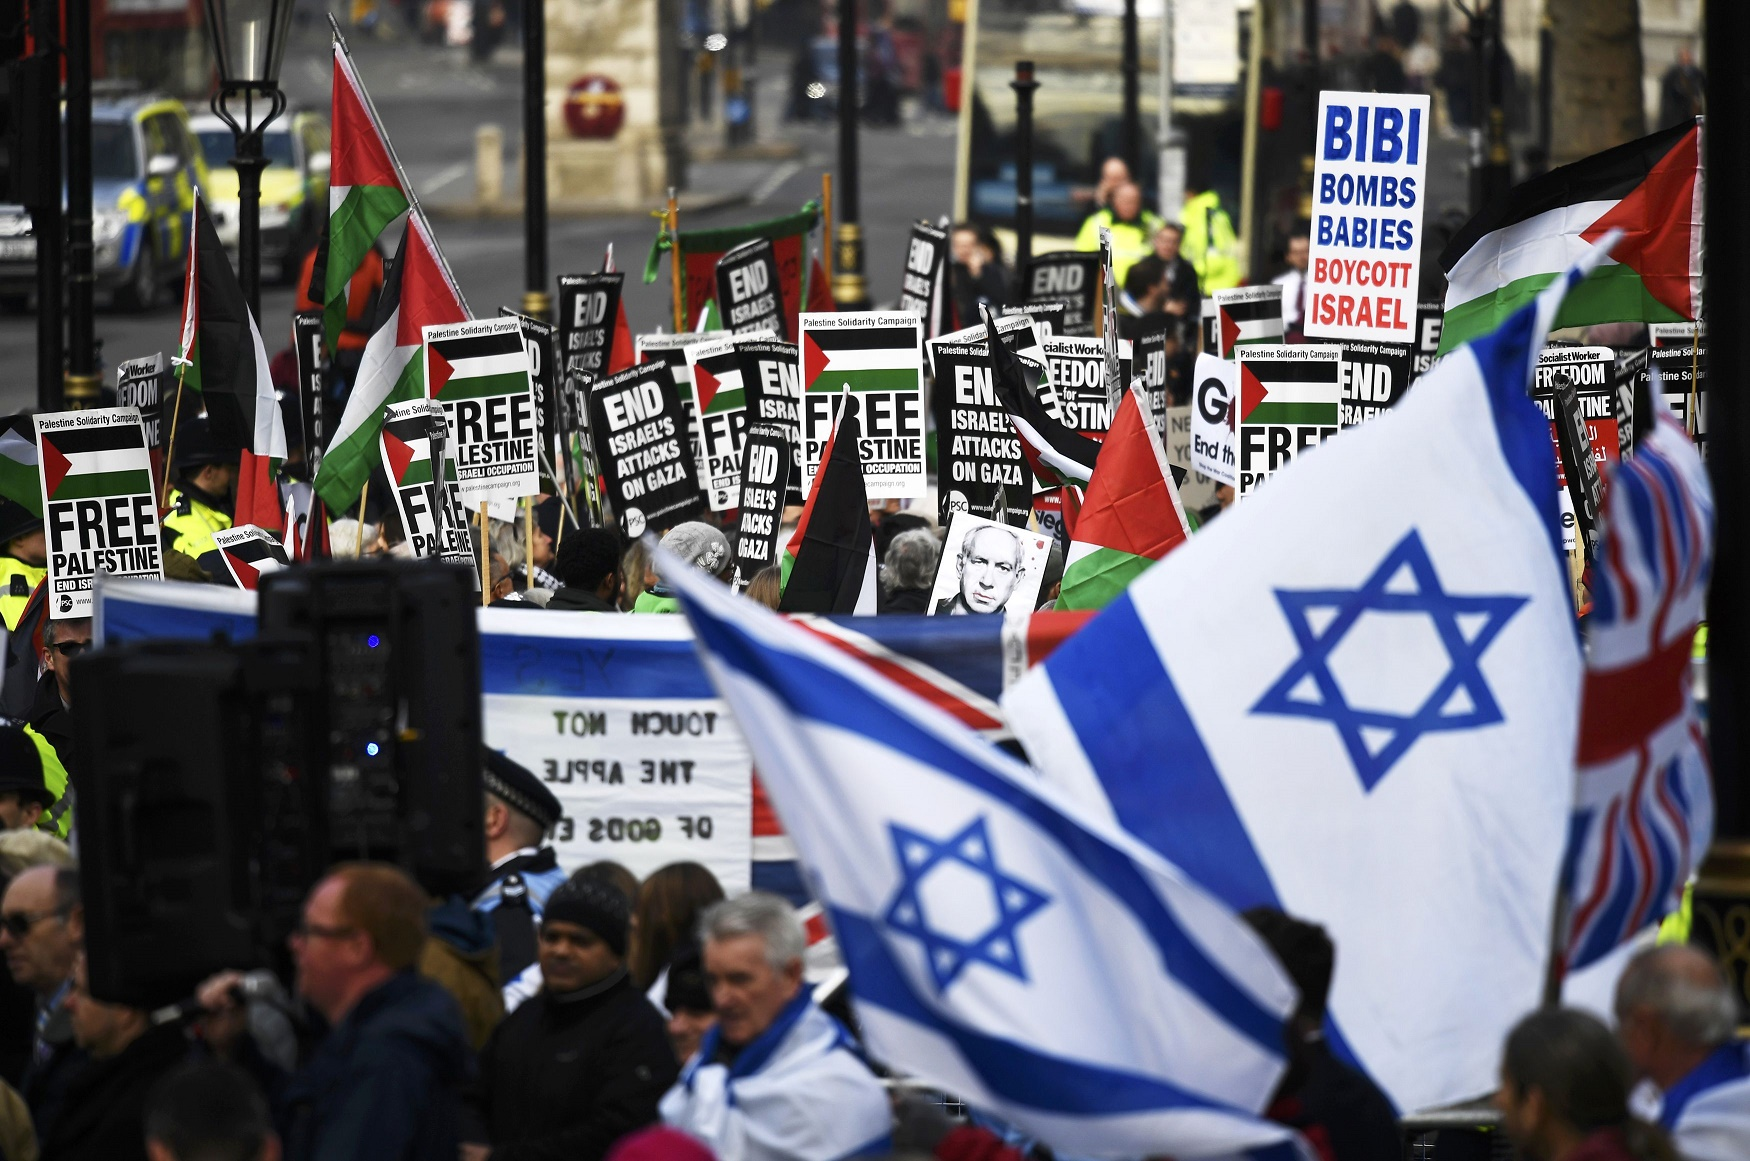 Pro-Palestinian protesters are flanked by supporters of Israel at protests near 10 Downing Street (Reuters)